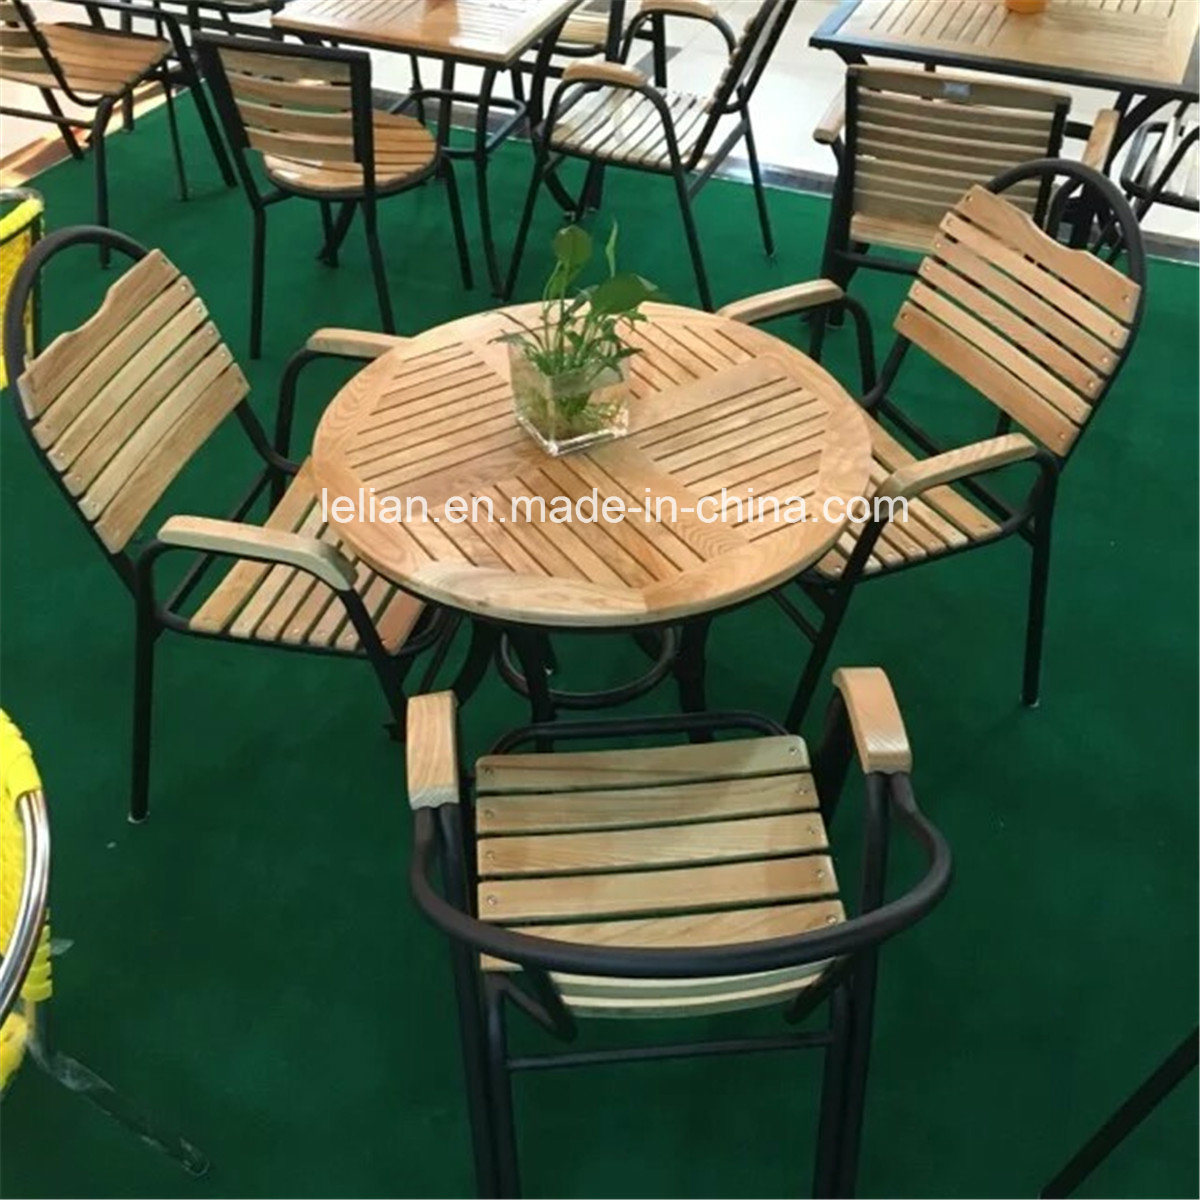 Outdoor Table And Chair Set Hot Item Garden Furniture Mdf Wood Table And Chair Set Ll Rst010